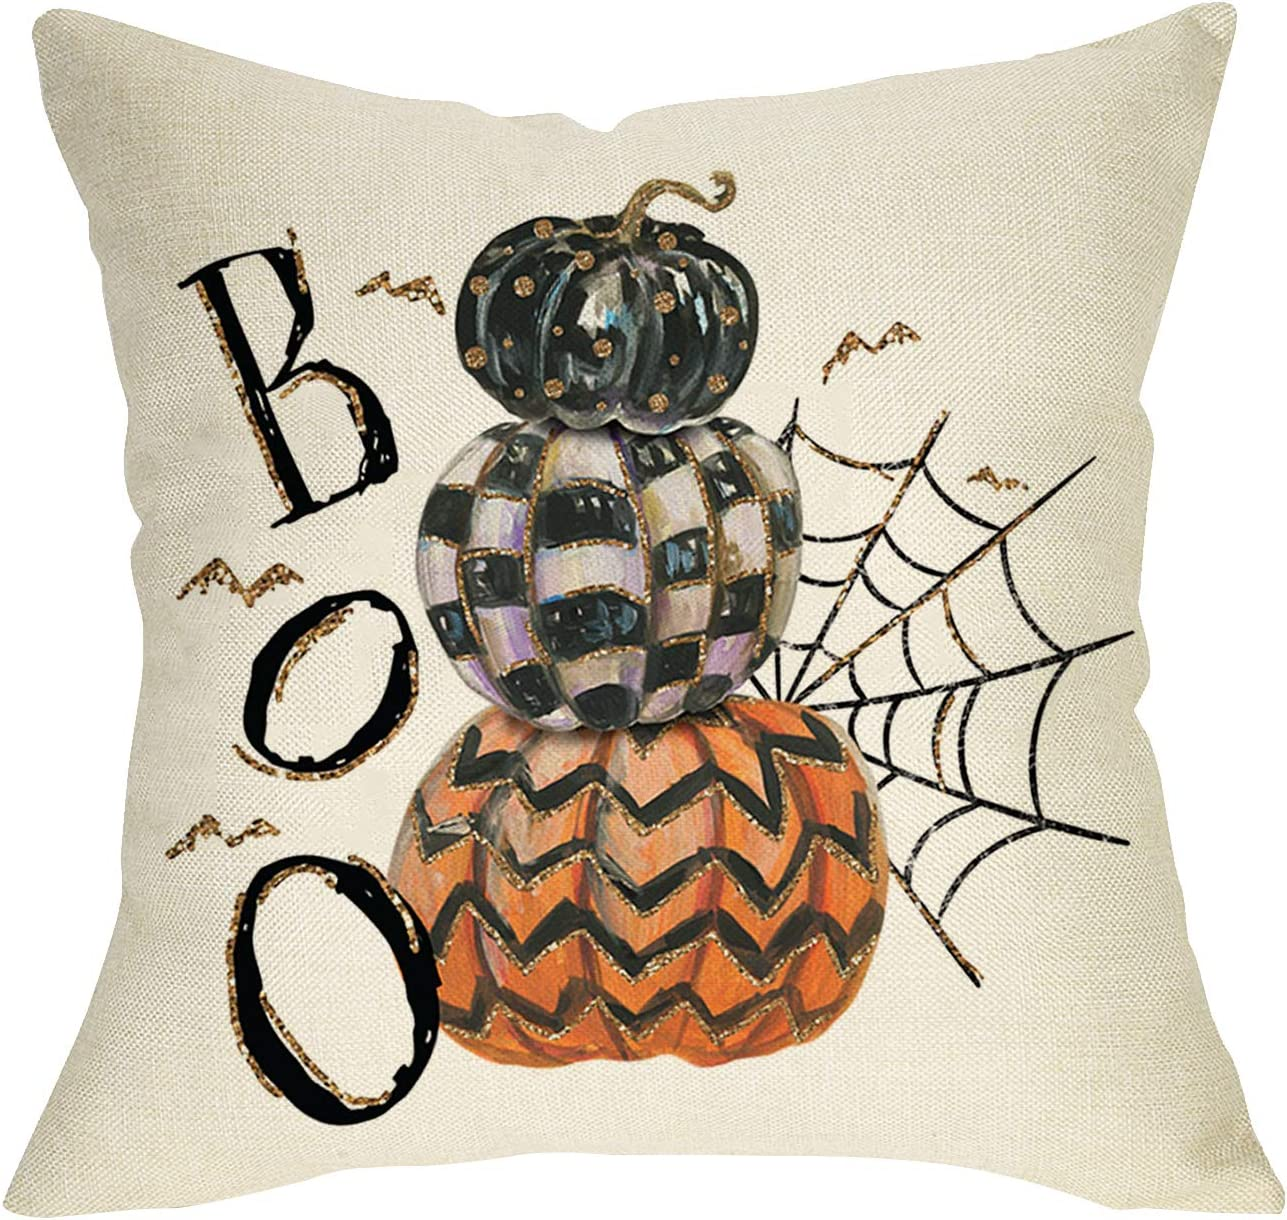 Softxpp Boo Halloween Decorative Throw Pillow Cover, Plaid Pumpkins Cushion Case Spider Web Bat Decor Sign, Fall Holiday Square Pillowcase for Autumn Home Decoration Sofa Couch 18x18 Cotton Linen